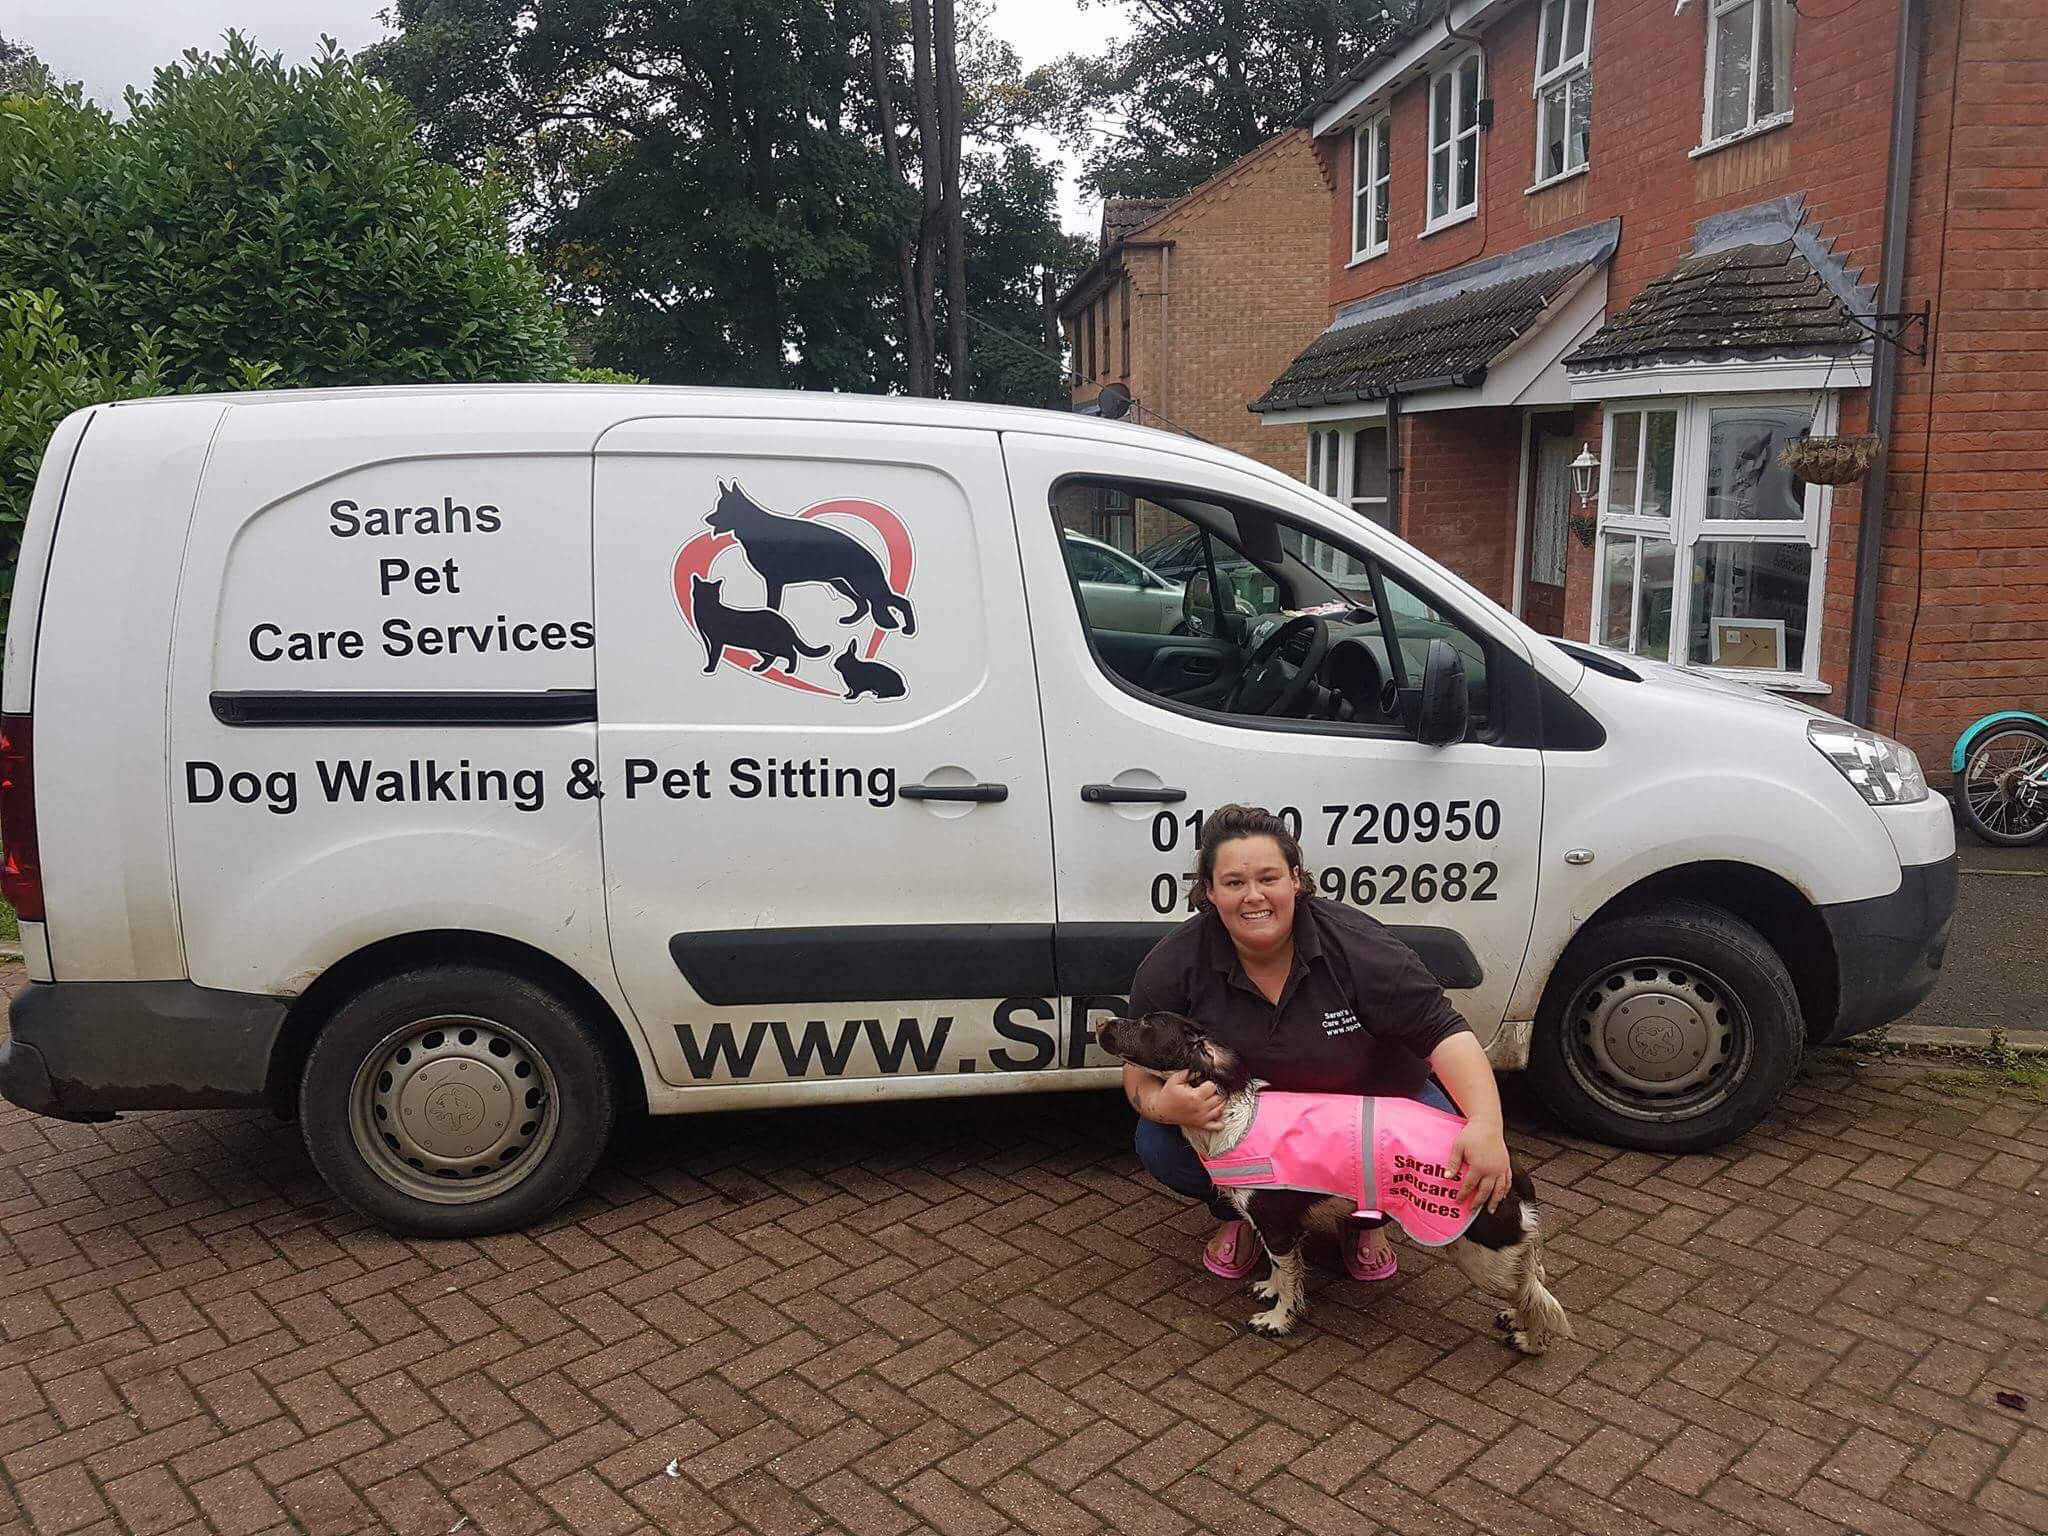 Dog Walking and Pet Sitting van from Sarahs Pet Care Services